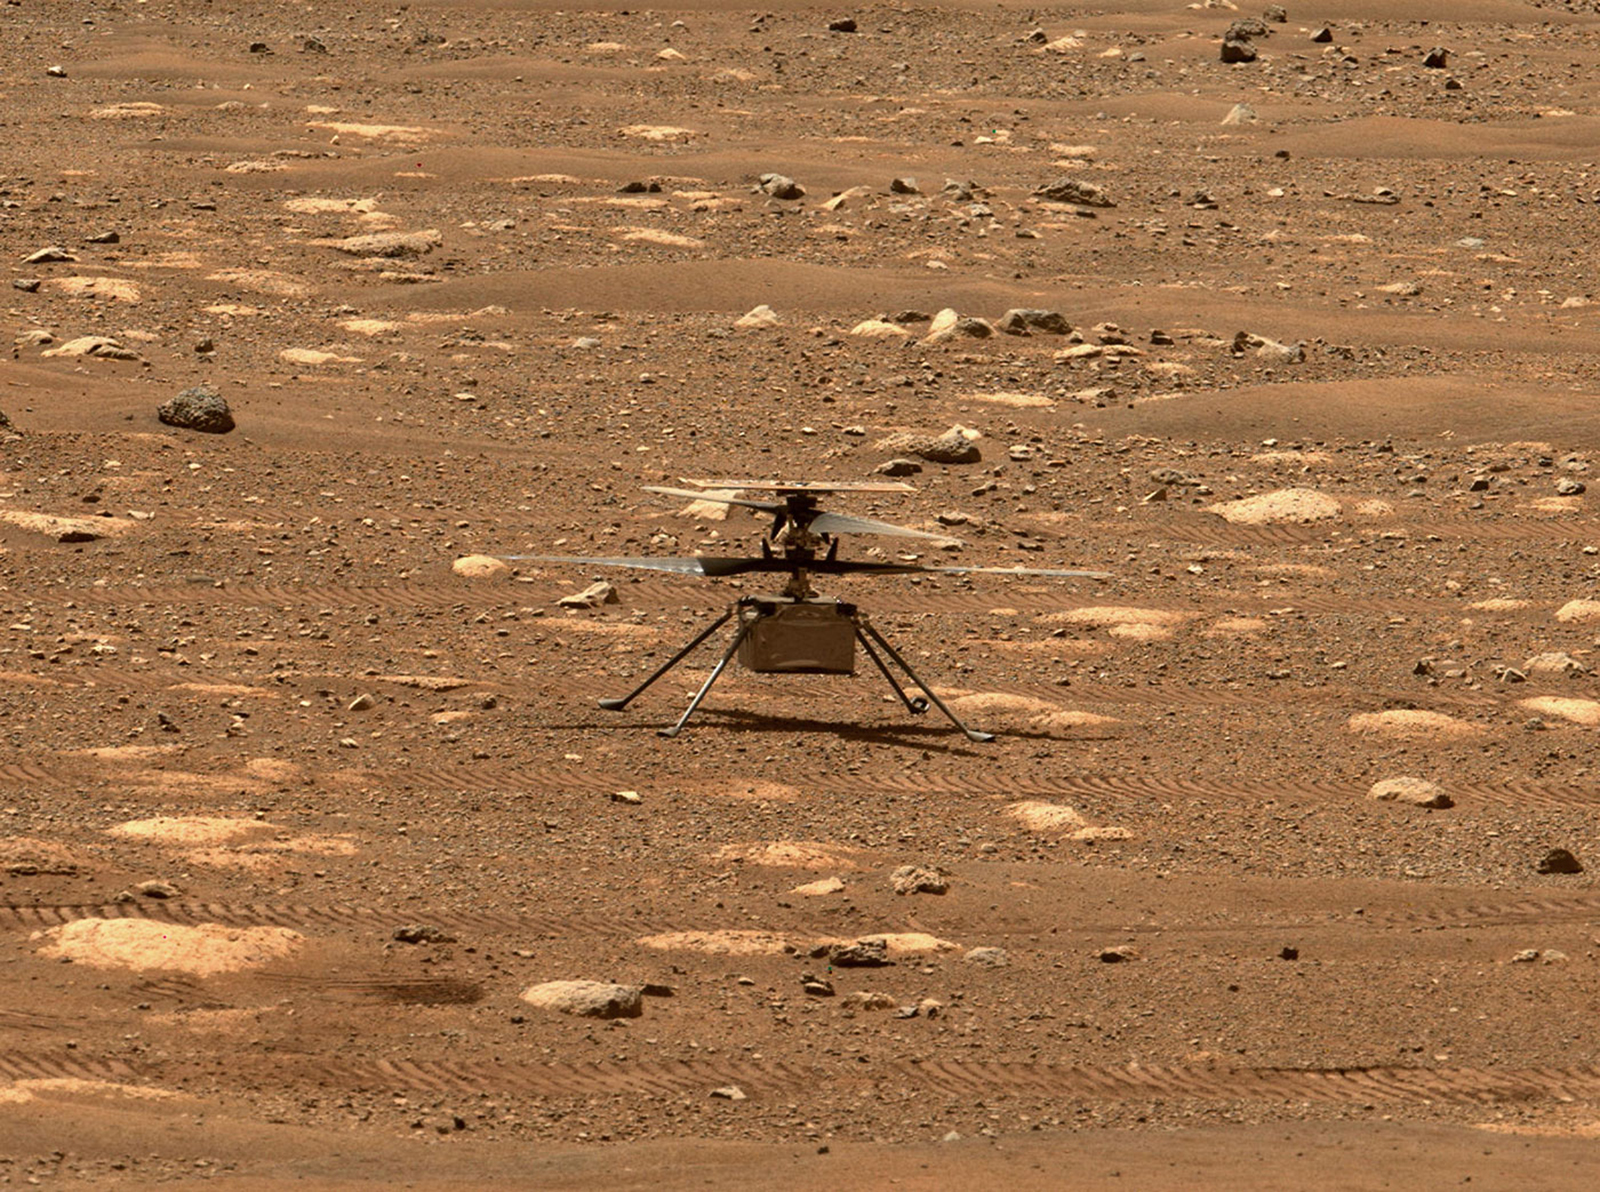 There's a fix for what ails the Mars helicopter's software